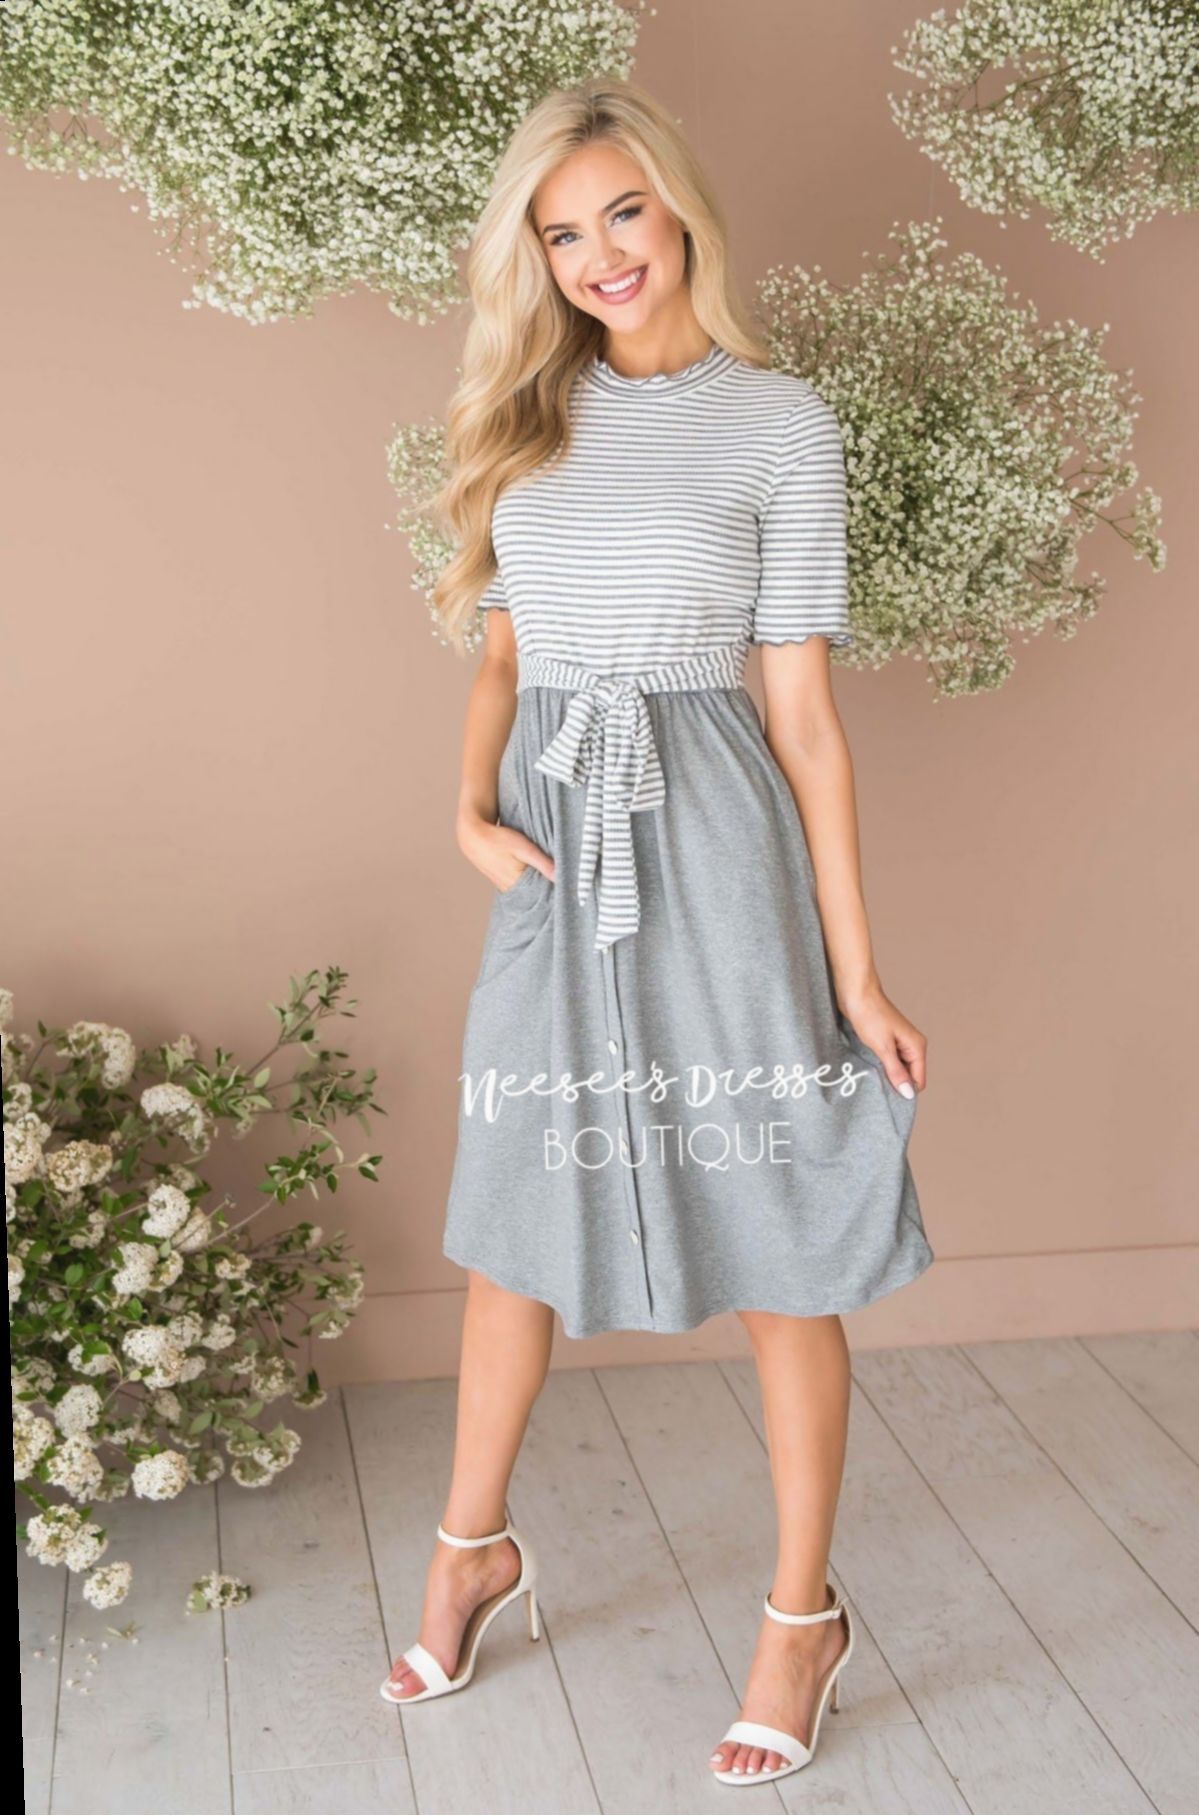 4+ Cute Clothes For Teenage Girls For Church  Modest dresses